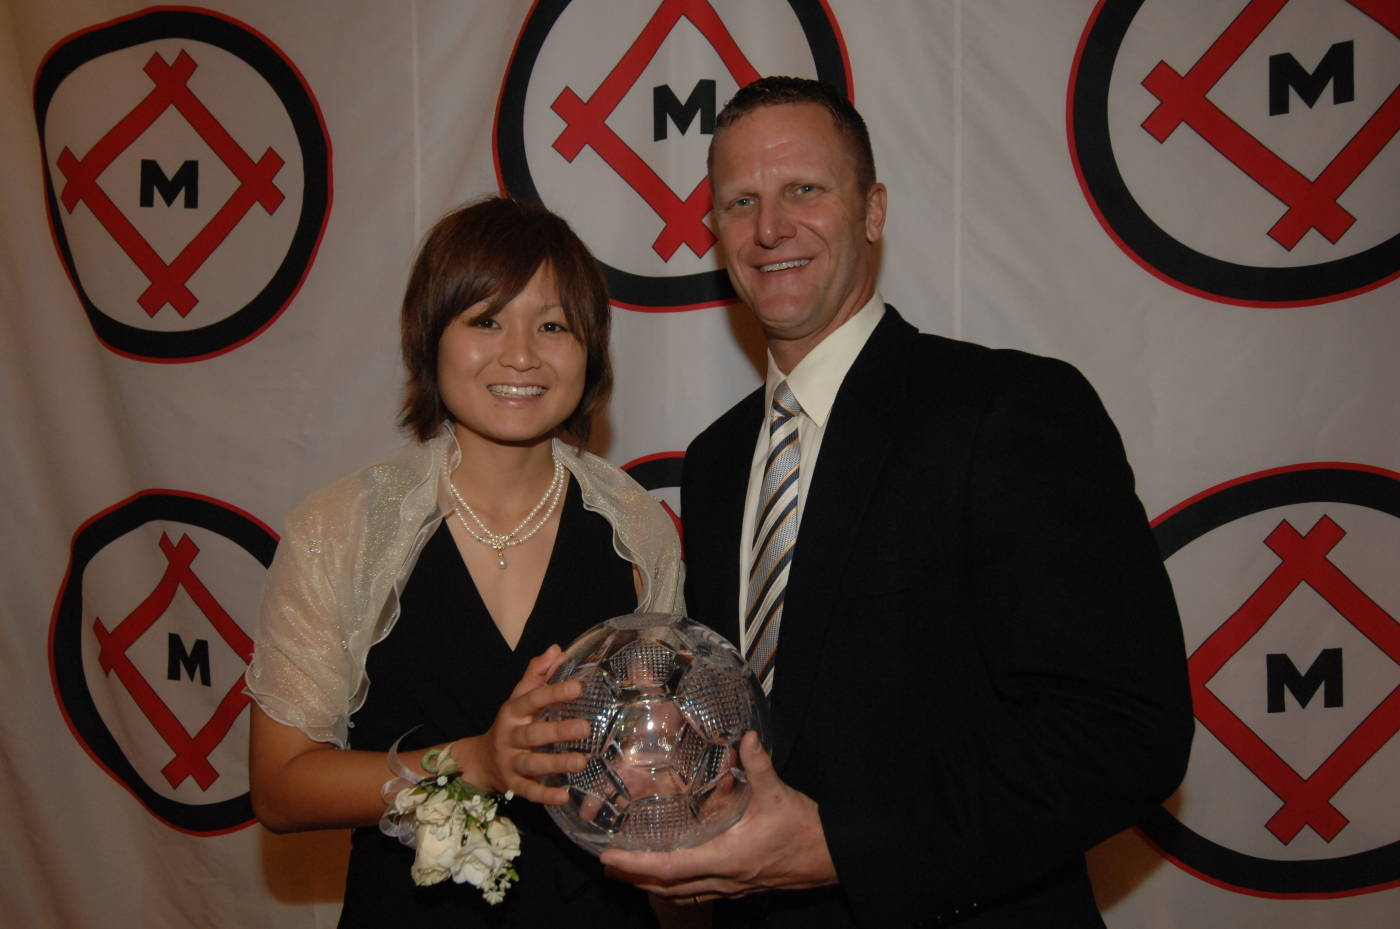 Mami Yamaguchi with the Hermann Trophy